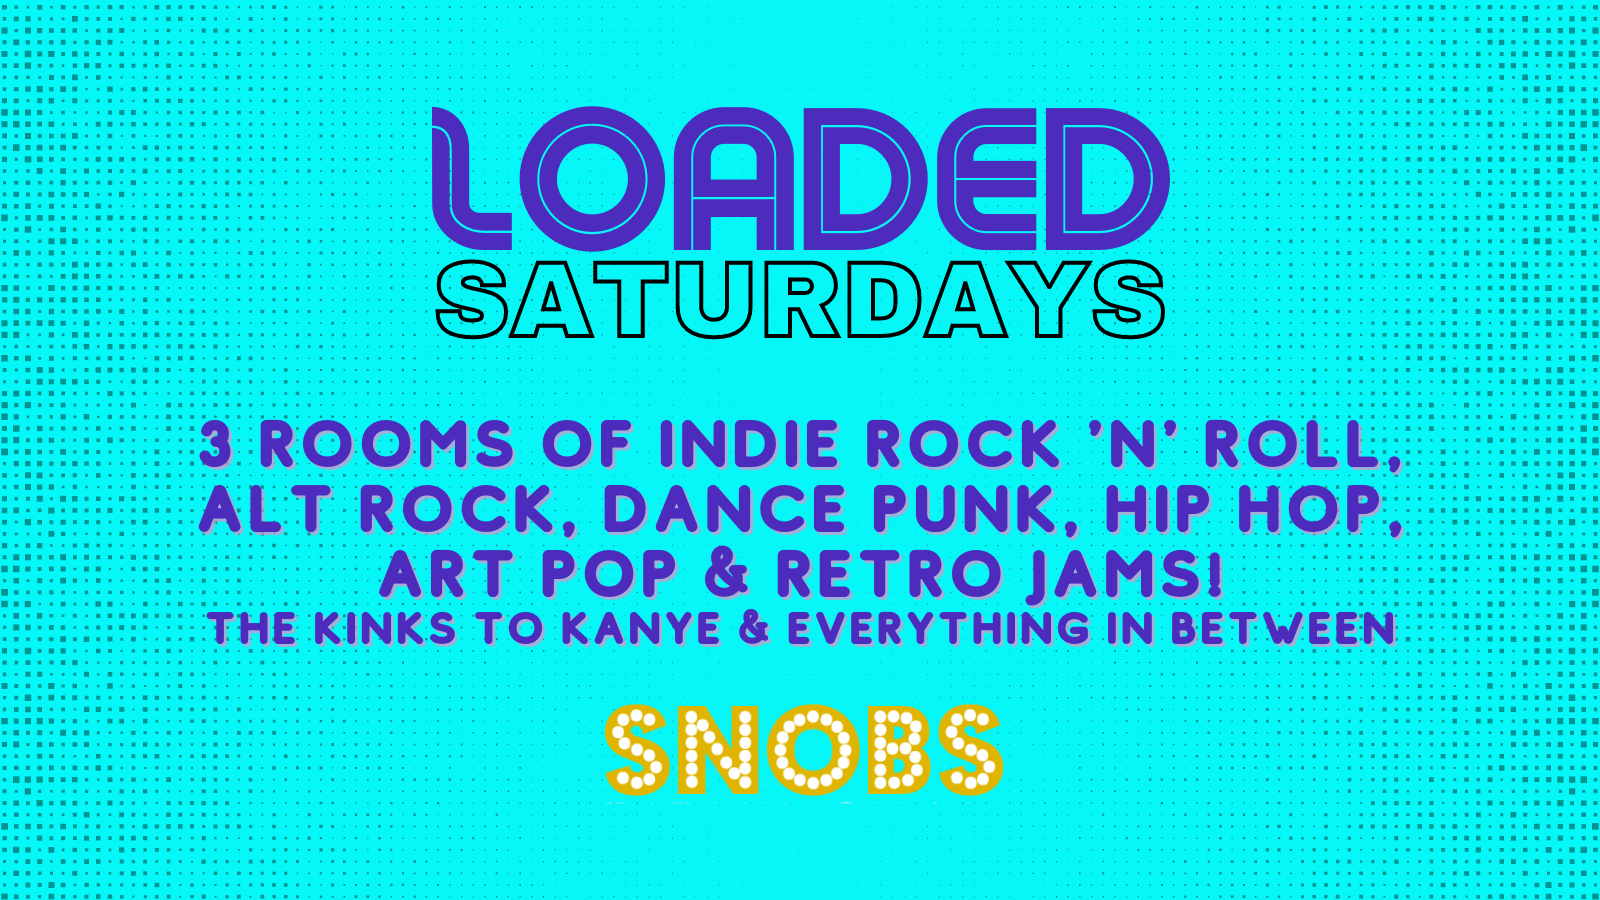 Loaded Saturday 9th October